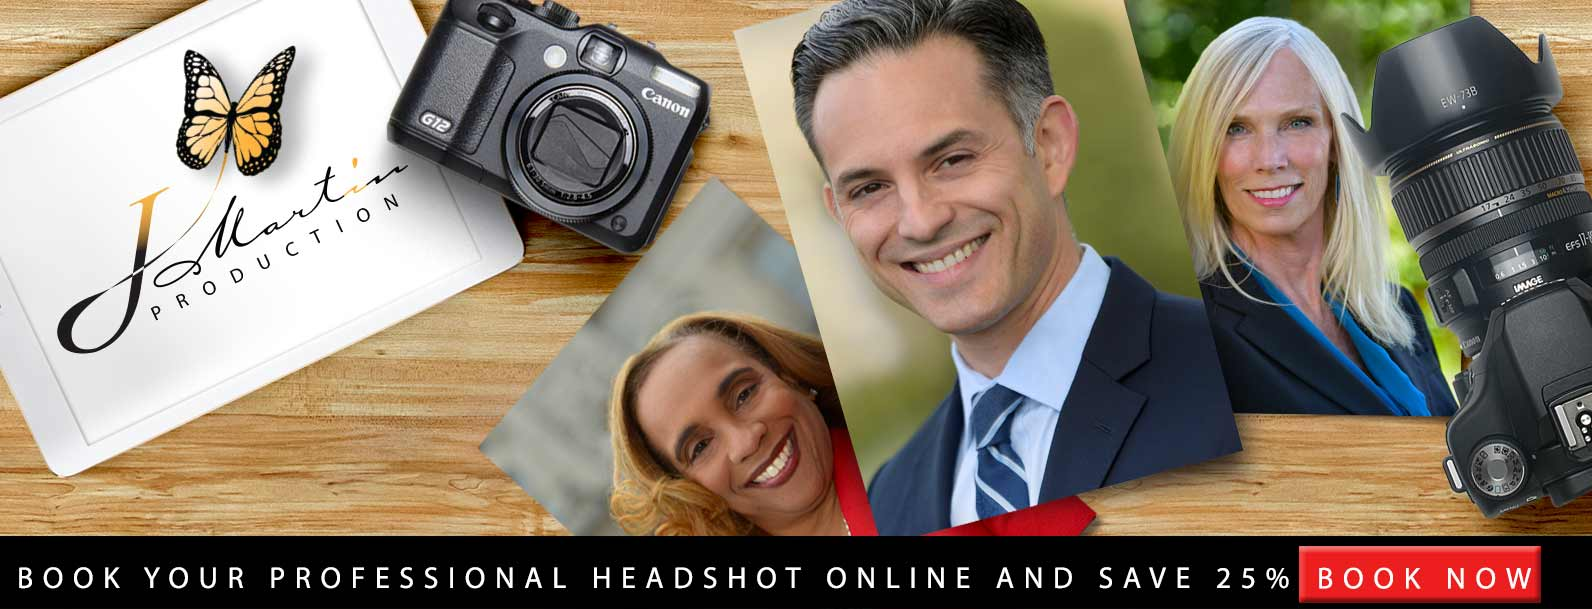 Book Professional Headshot Online and Save